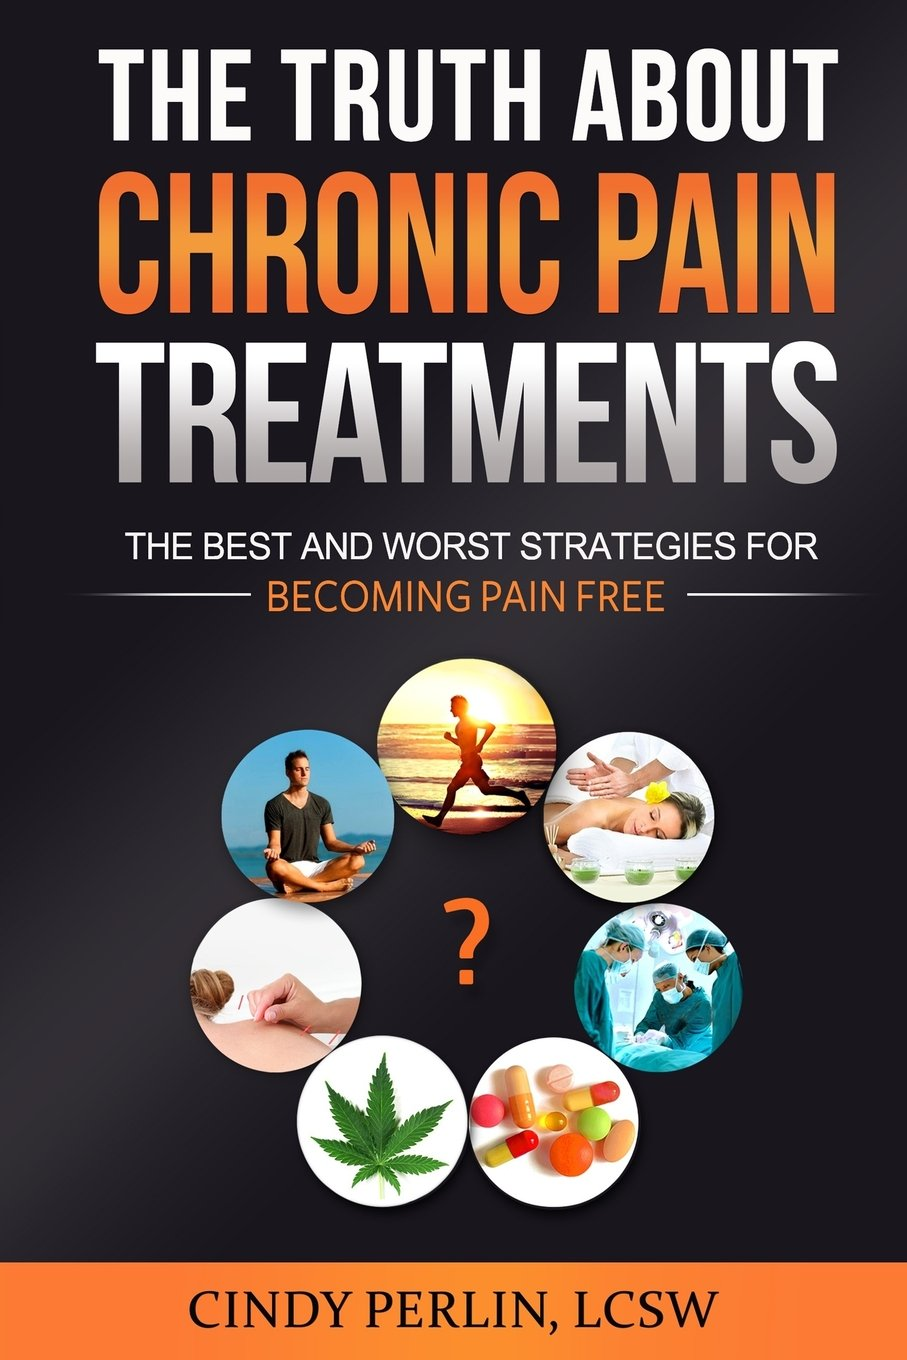 The Truth About Chronic Pain Treatments: The Best And Worst Strategies For  Becoming Pain Free: Cindy Perlin: 9780996686204: Amazon: Books